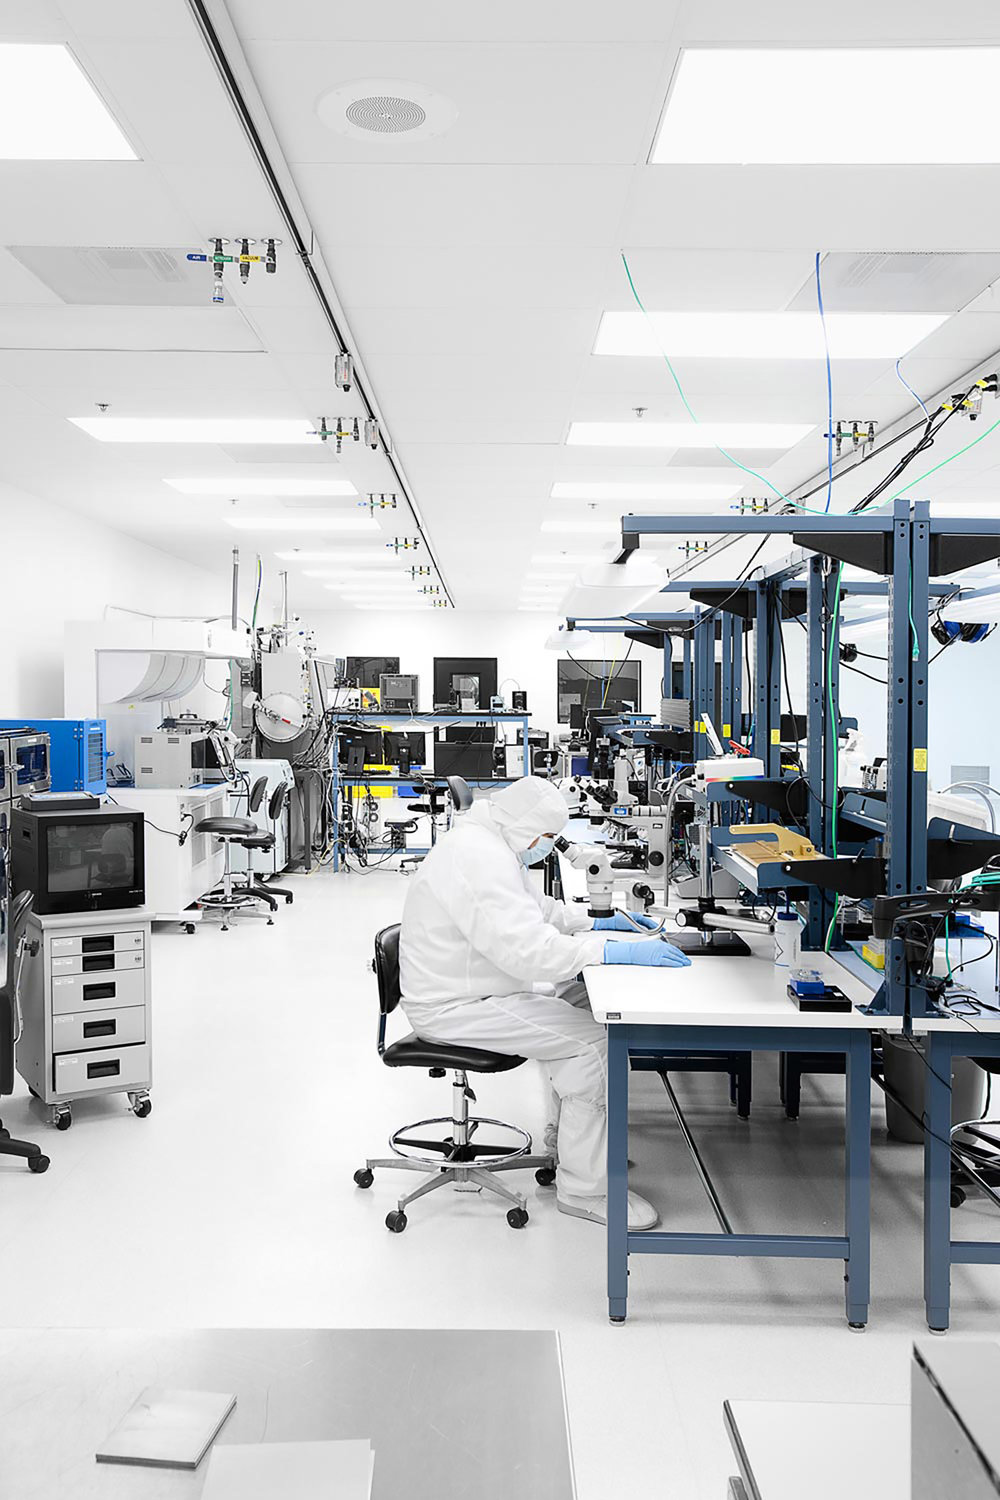 Argus II Retinal Implant Lab, Second Sight, Sylmar, California, 2010